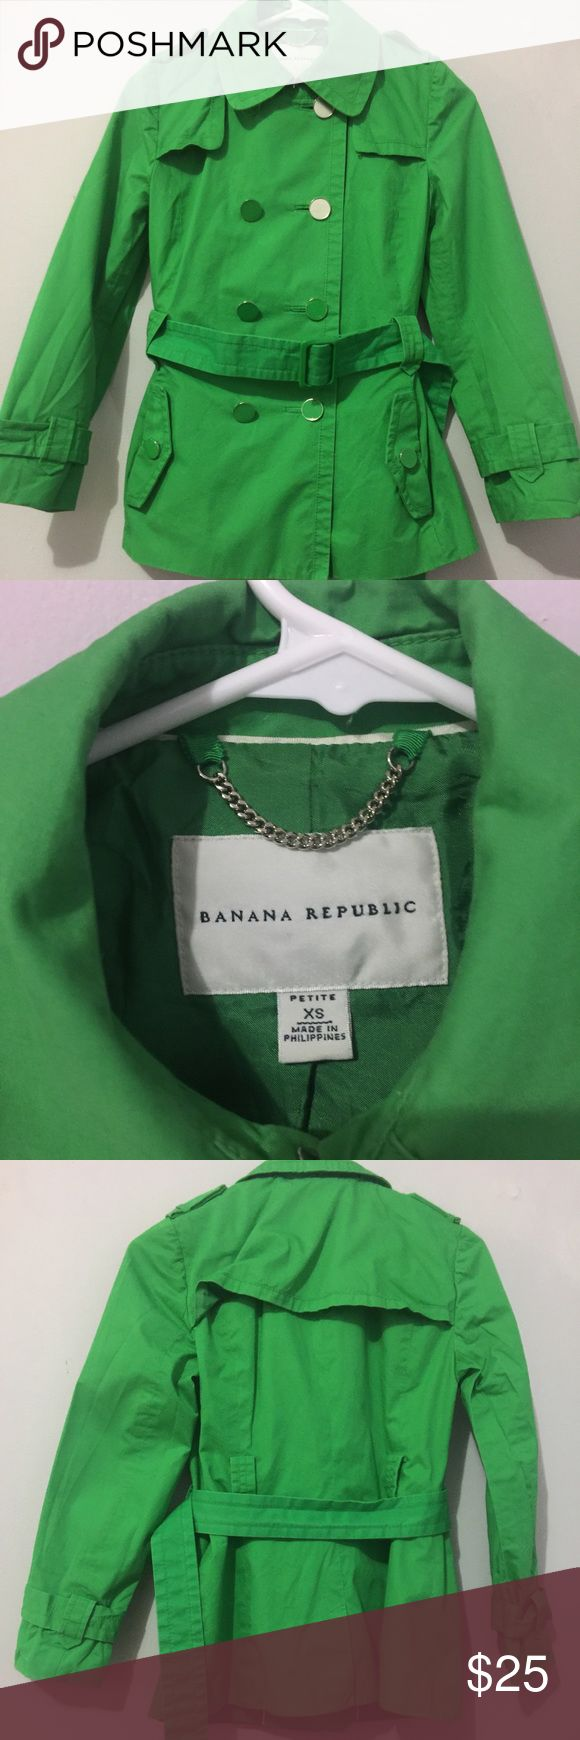 Banana republic XS petite trench coat 👒 Banana republic XS petite trench coat 👒 lightly worn the first 2 buttons of the right are missing the green circle in the middle see picture please . ❤️ any reasonable offers are welcome ❤️ Banana Republic Jackets & Coats Trench Coats